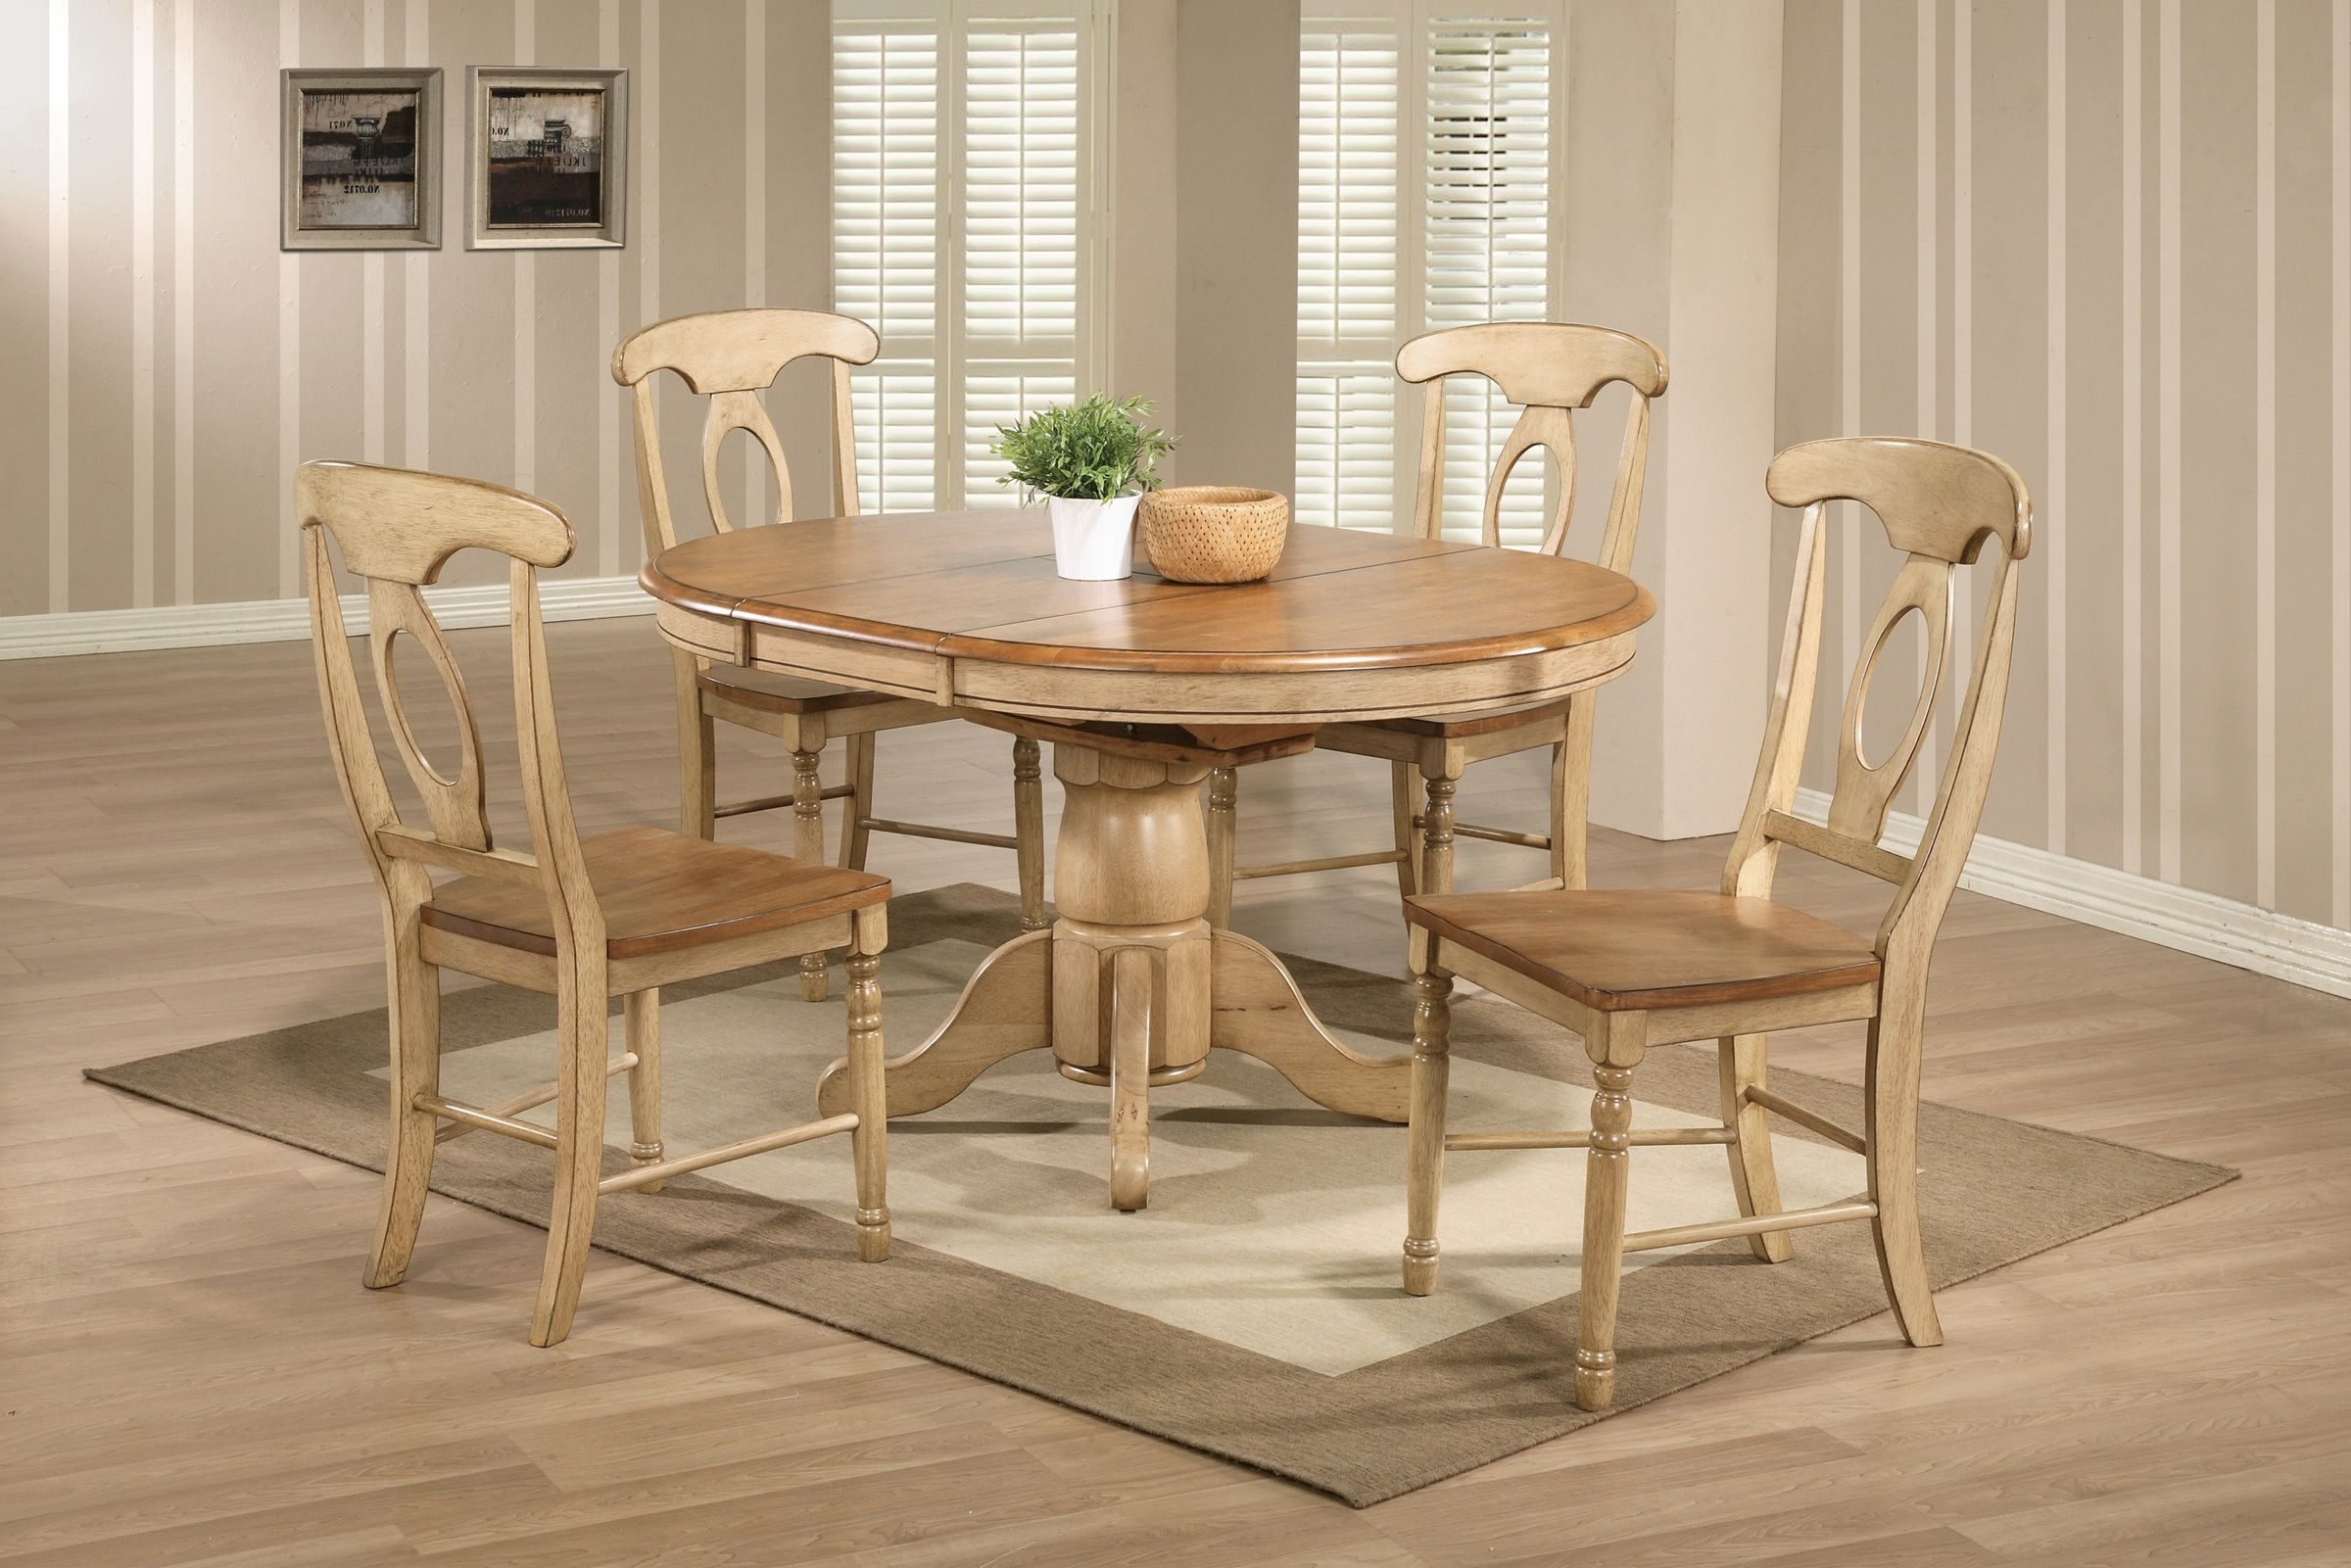 Dining Room Chairs Kansas City quail run - pedestal table - dq14257 dining tables from winners only